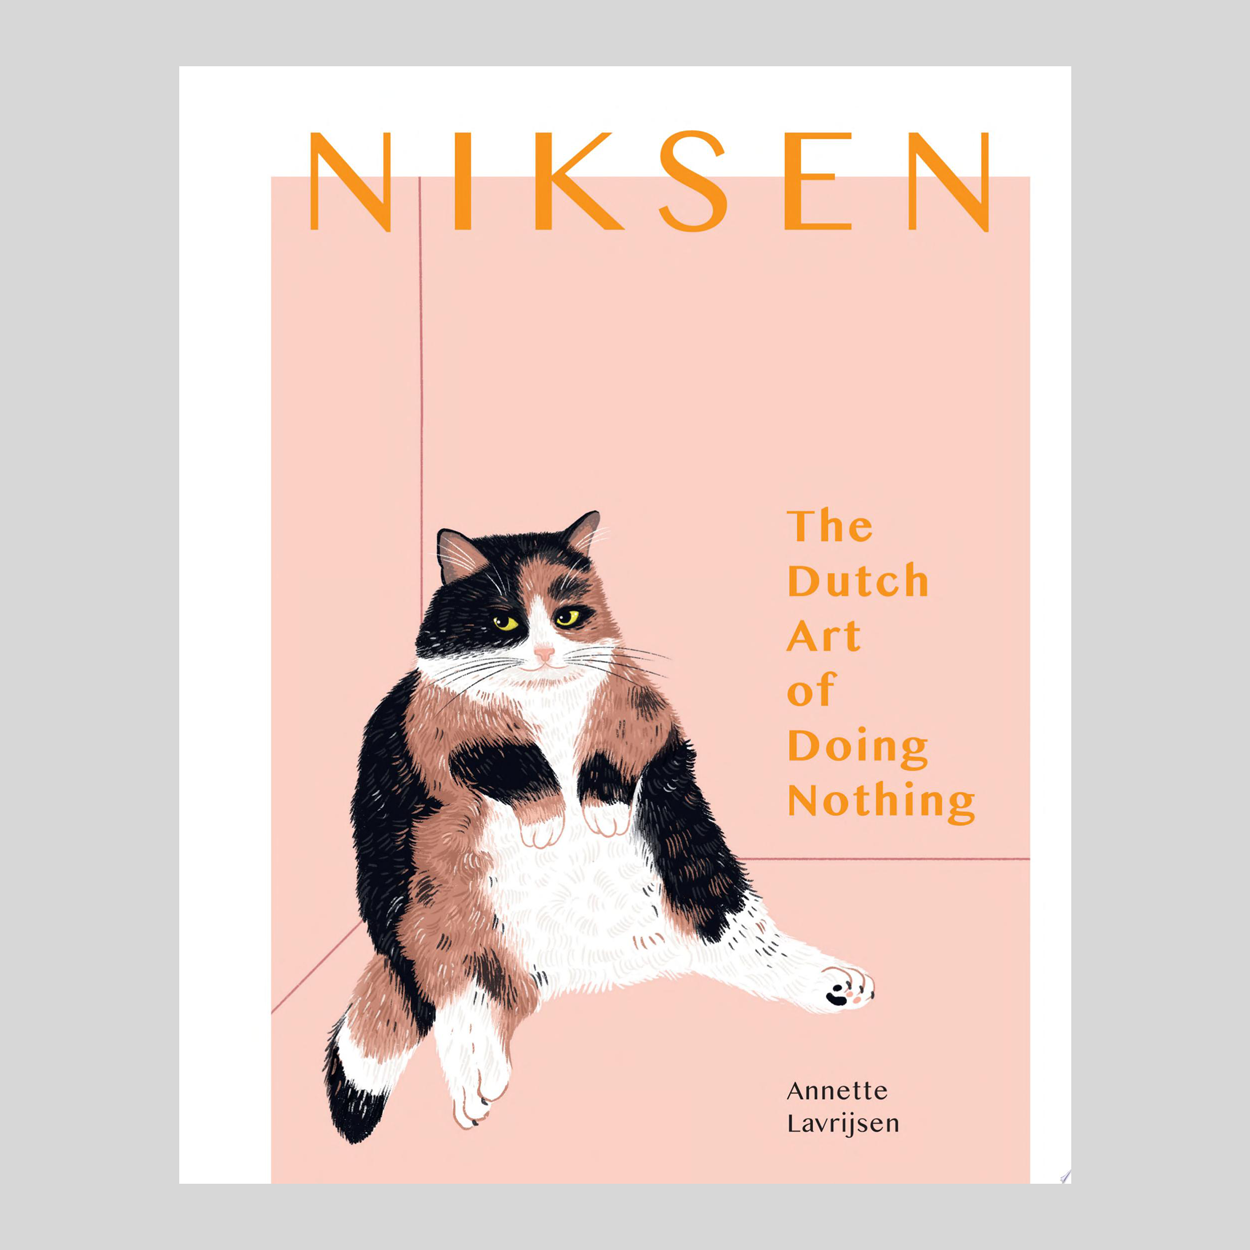 homeware-books-niksen-dutch-art-doing-nothing